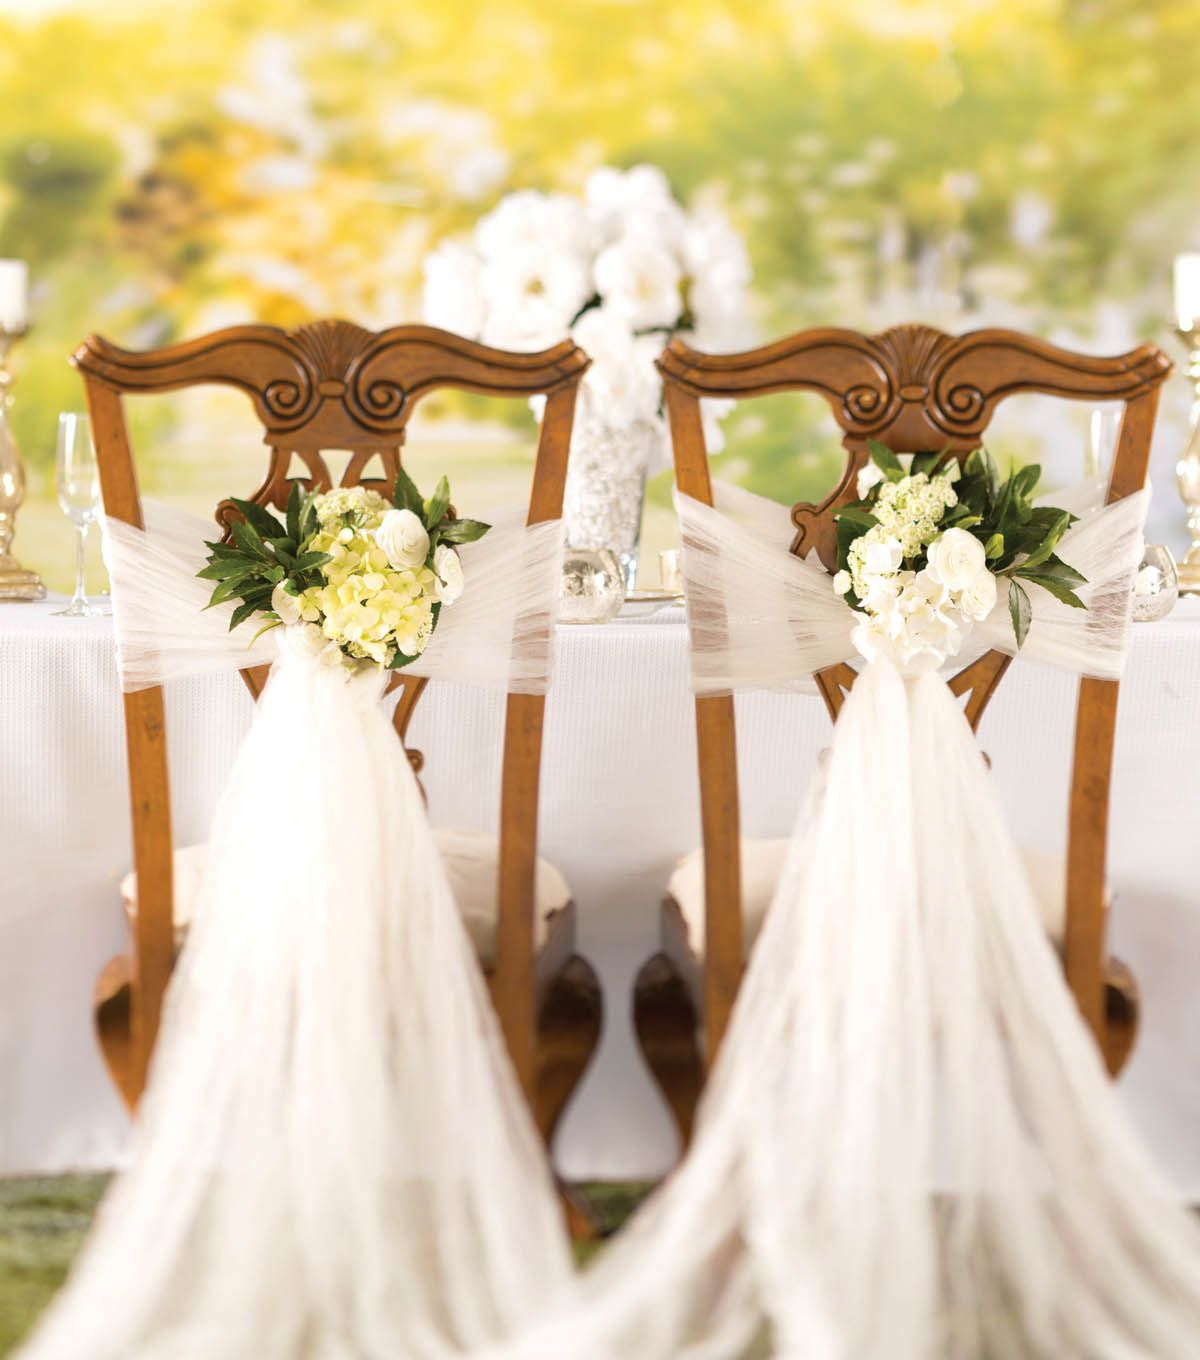 How To Make A Crushed Tulle Chair Dcor | DIY Wedding ...